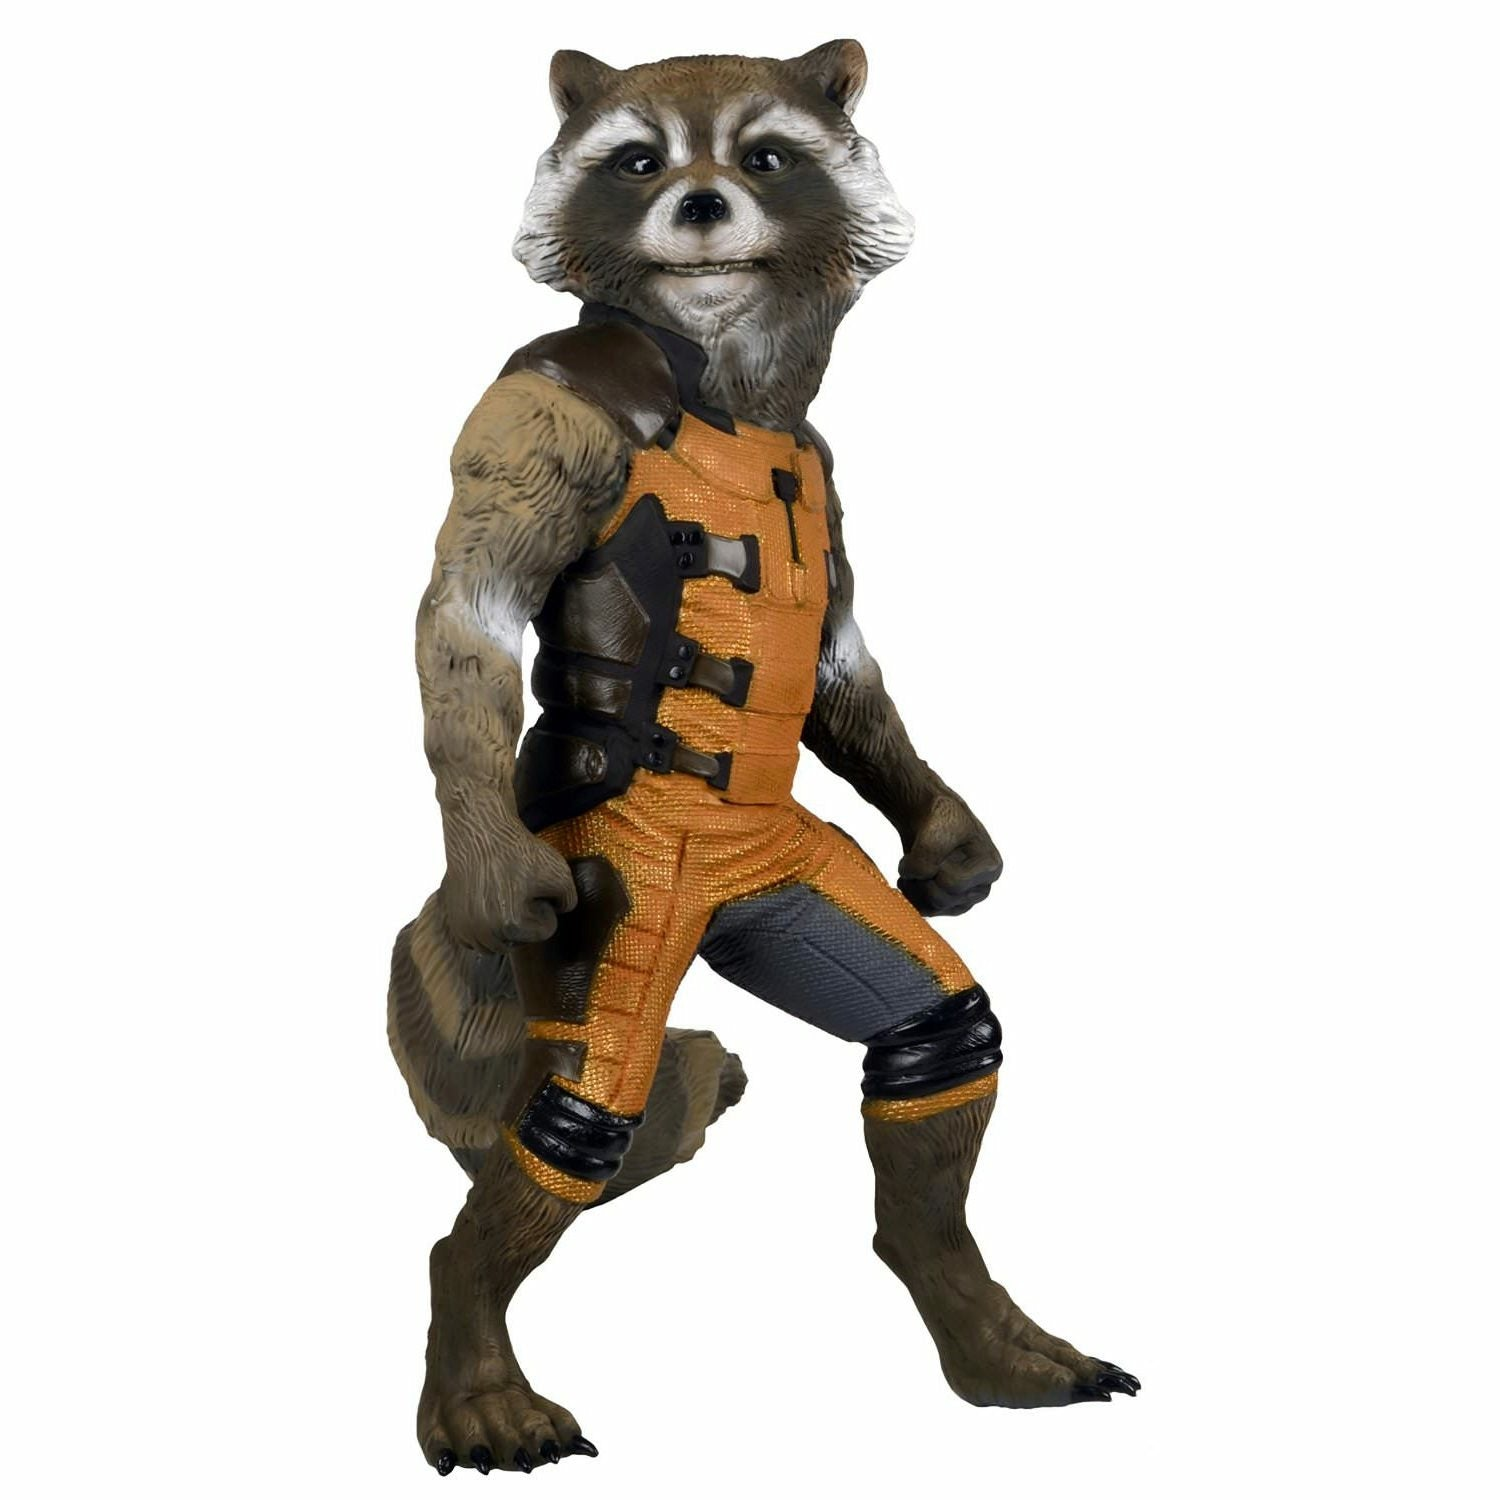 Neca Guardians of the Galaxy Rocket Raccoon Full Size Statue